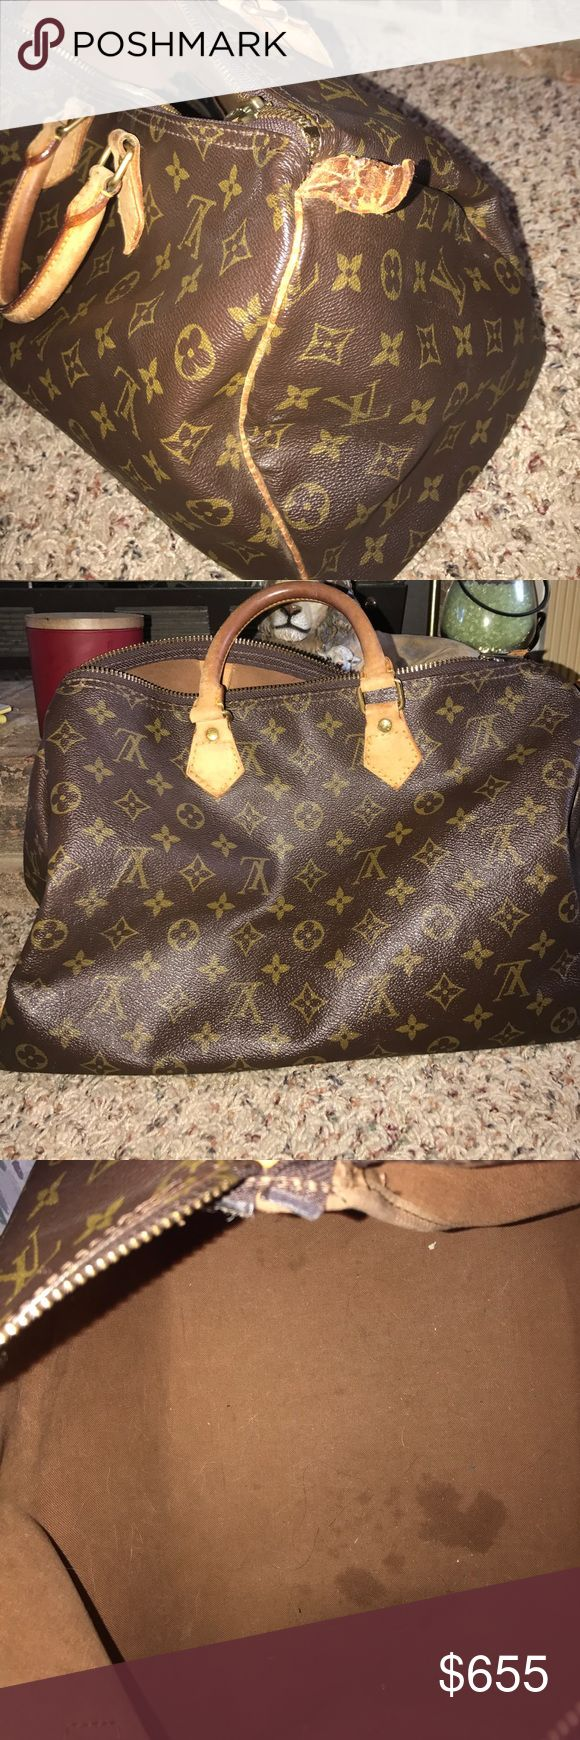 Louis Vuitton speedy 35 with shaper, lock, & key 100% authentic! will come with lock and key also will come with a shaper. Please consider I will only be making $520 on this price! This is a awesome deal for all four items! If you have any questions or concerns please ask! :) Louis Vuitton Bags Satchels